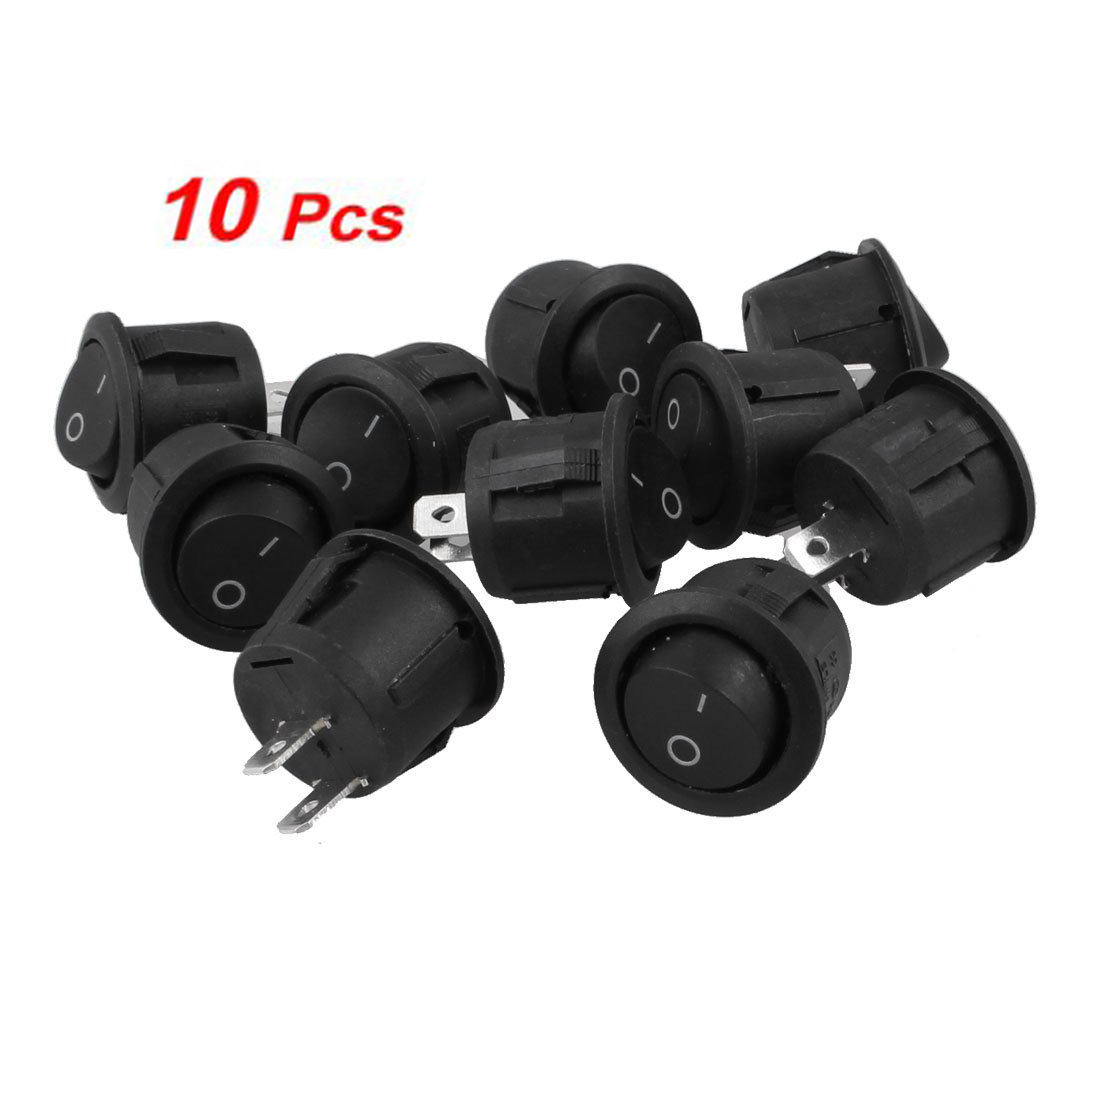 Promotion! 10Pcs AC 6A 10A 250V On Off Snap in SPST Round Boat Rocker Switch Black 5 pieces lot ac 6a 250v 10a 125v 5x 6pin dpdt on off on position snap boat rocker switches